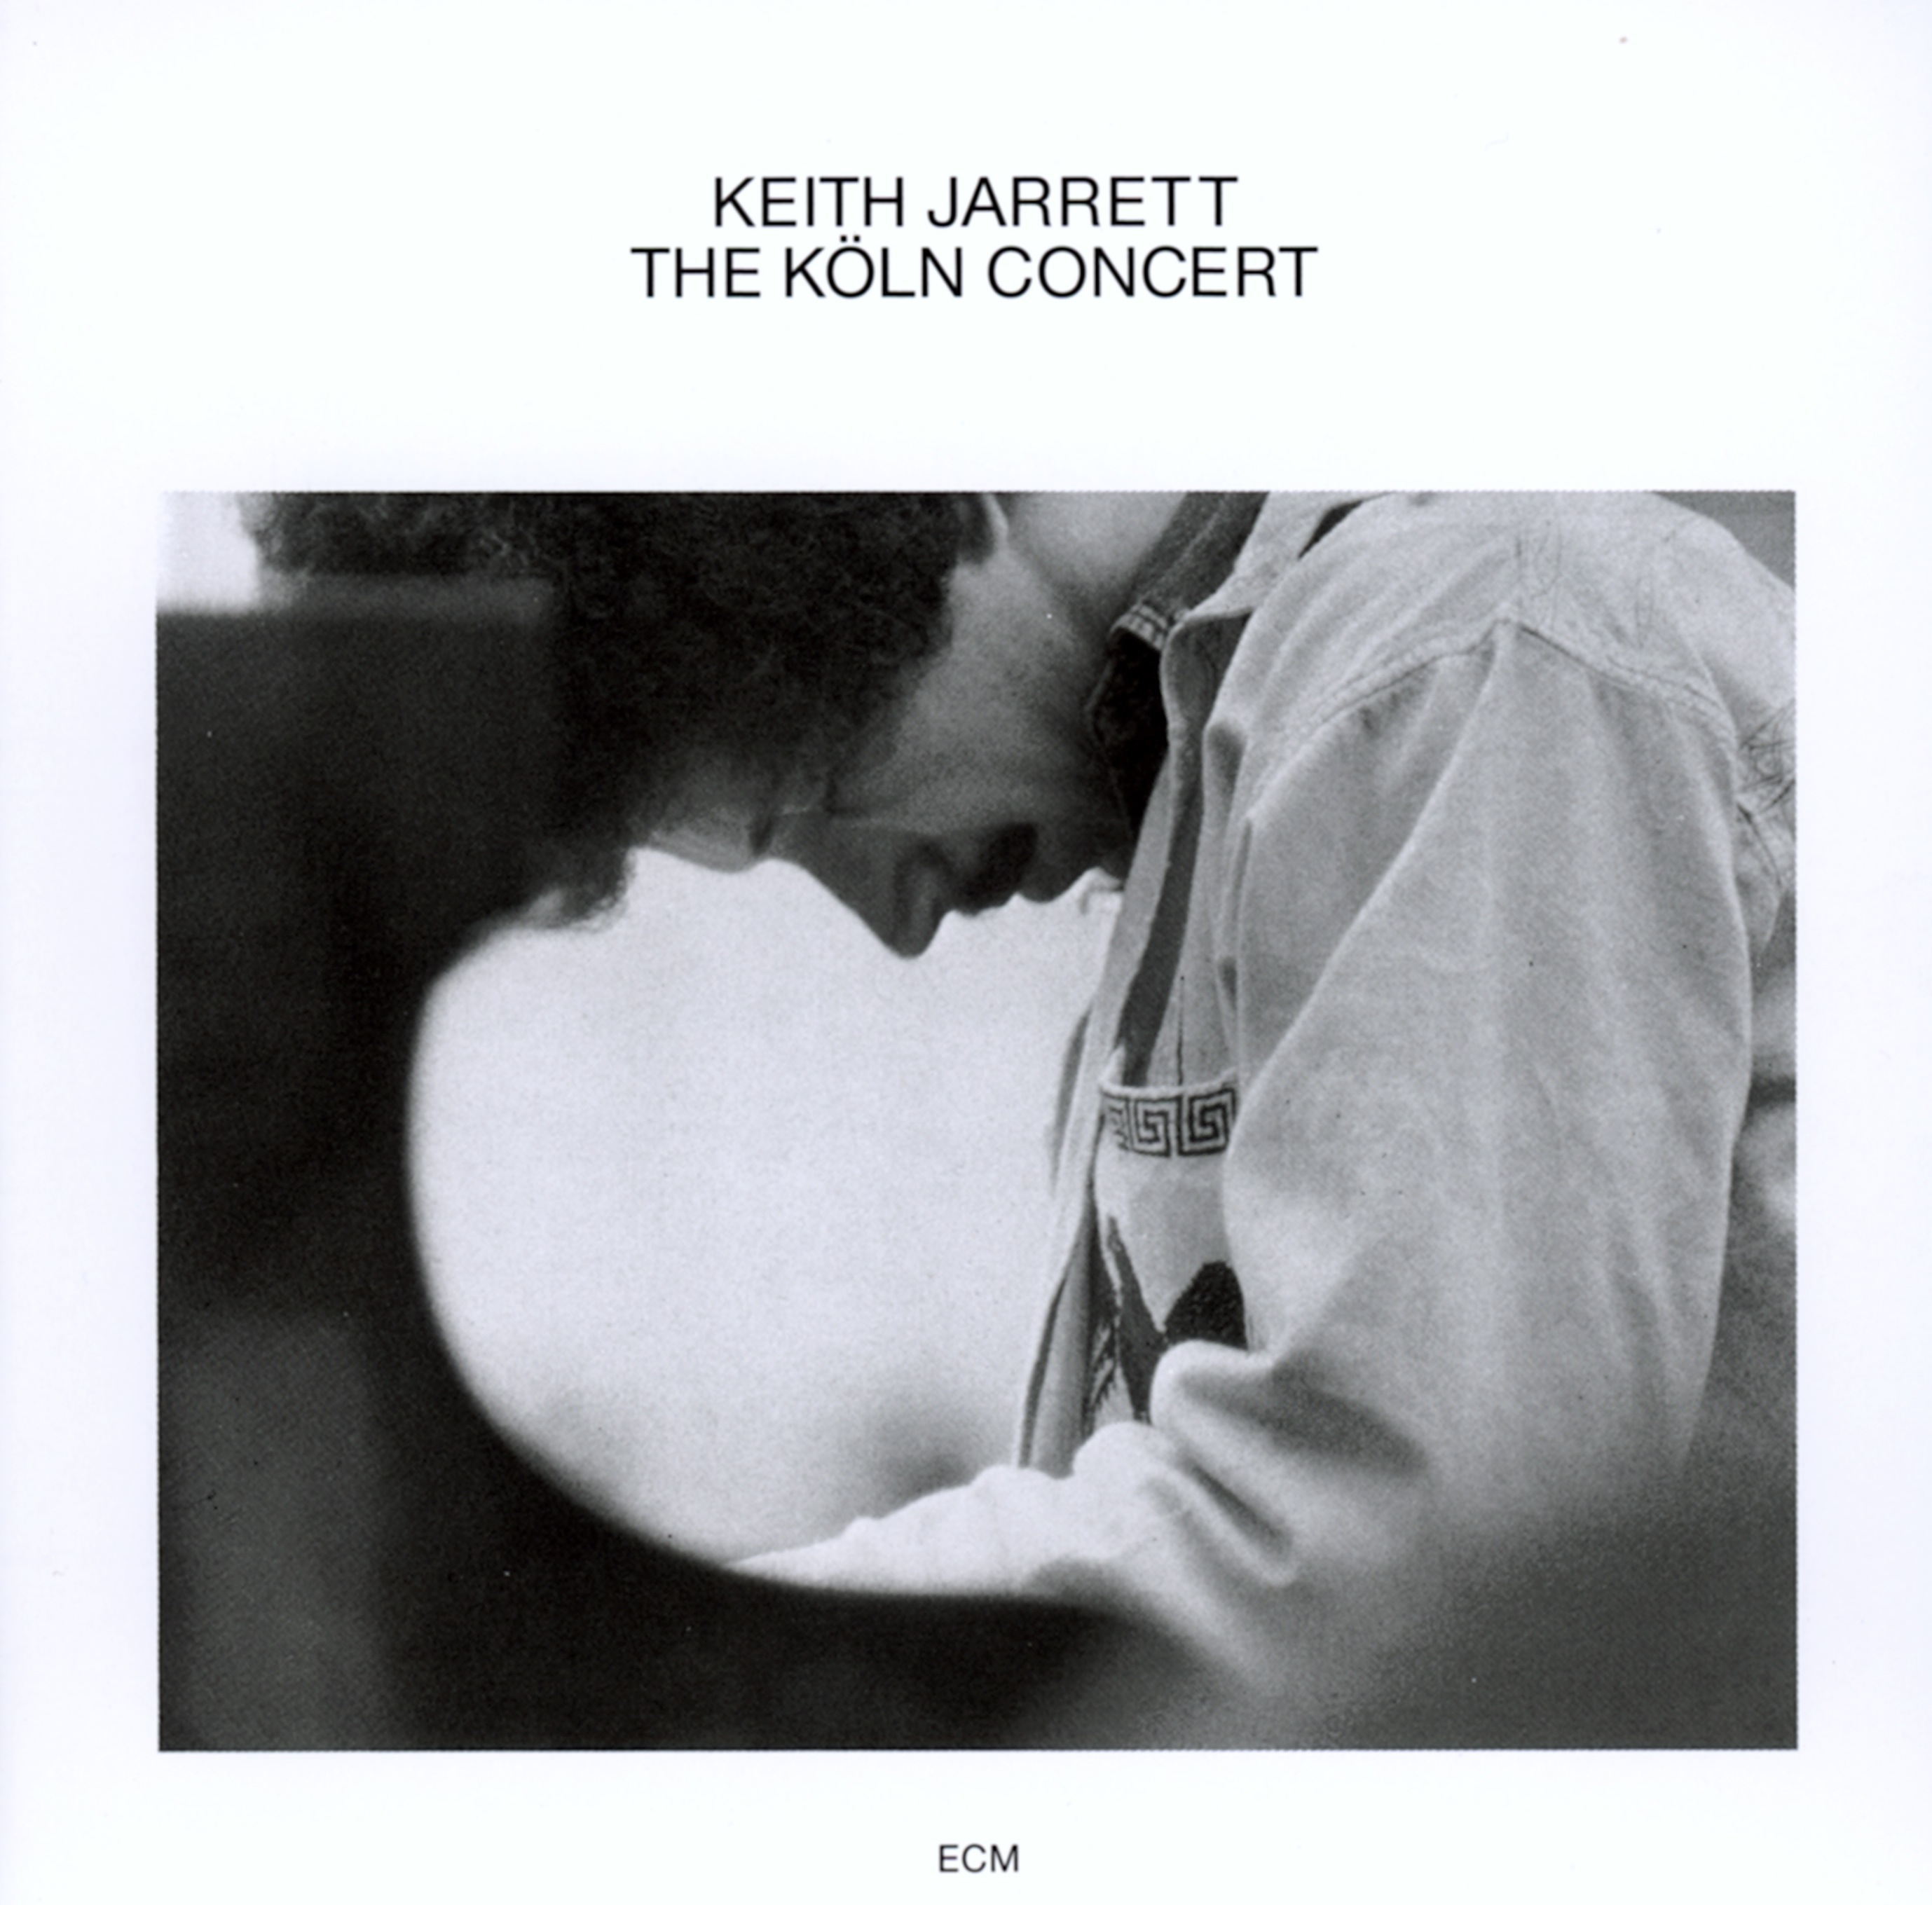 Keith Jarret - The Köln Concert (1975)